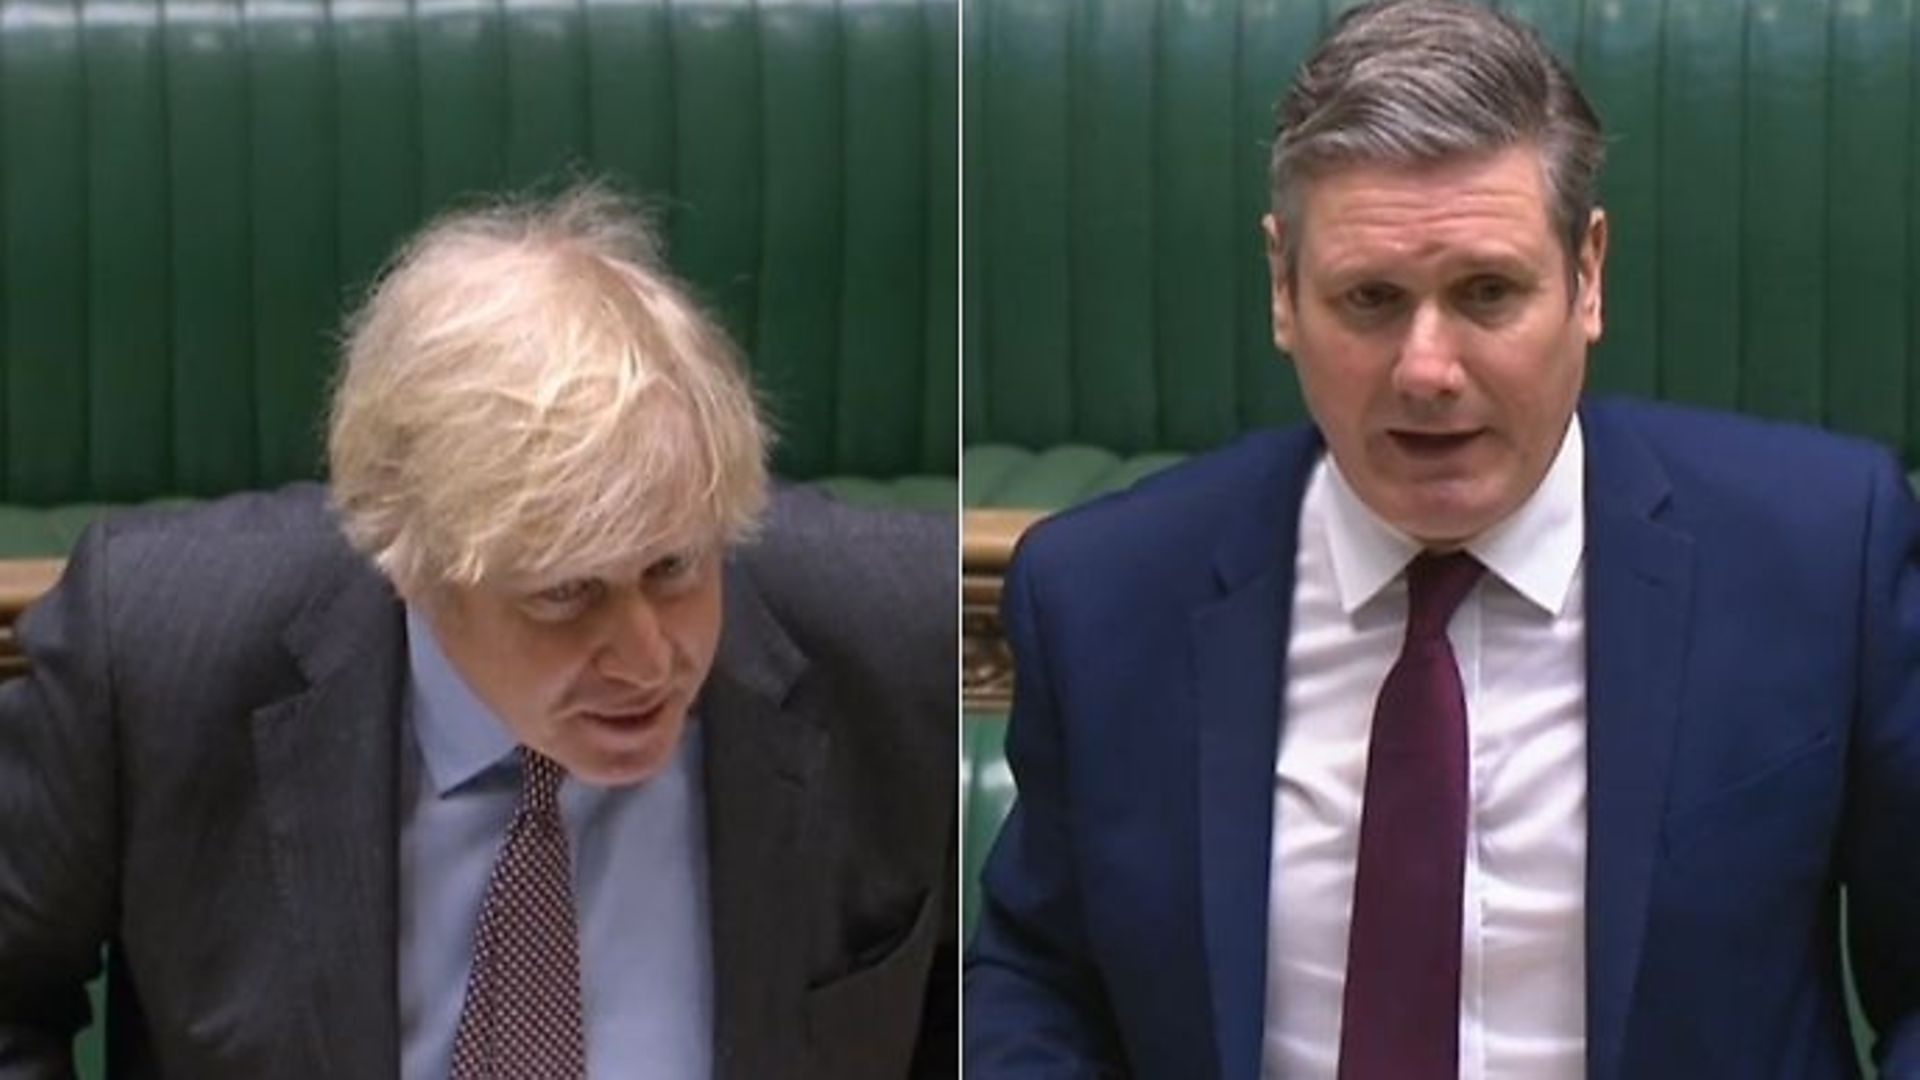 Boris Johnson (L) and Sir Keir Starmer during this week's Prime Minister's Questions - Credit: Parliamentlive.tv